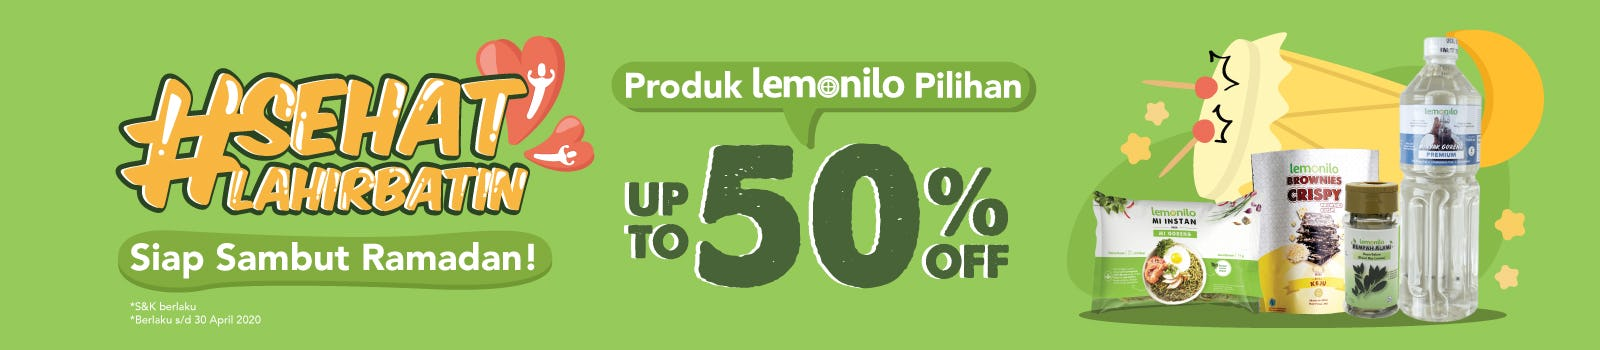 Siap Sambut Ramadan! Up To 50% OFF